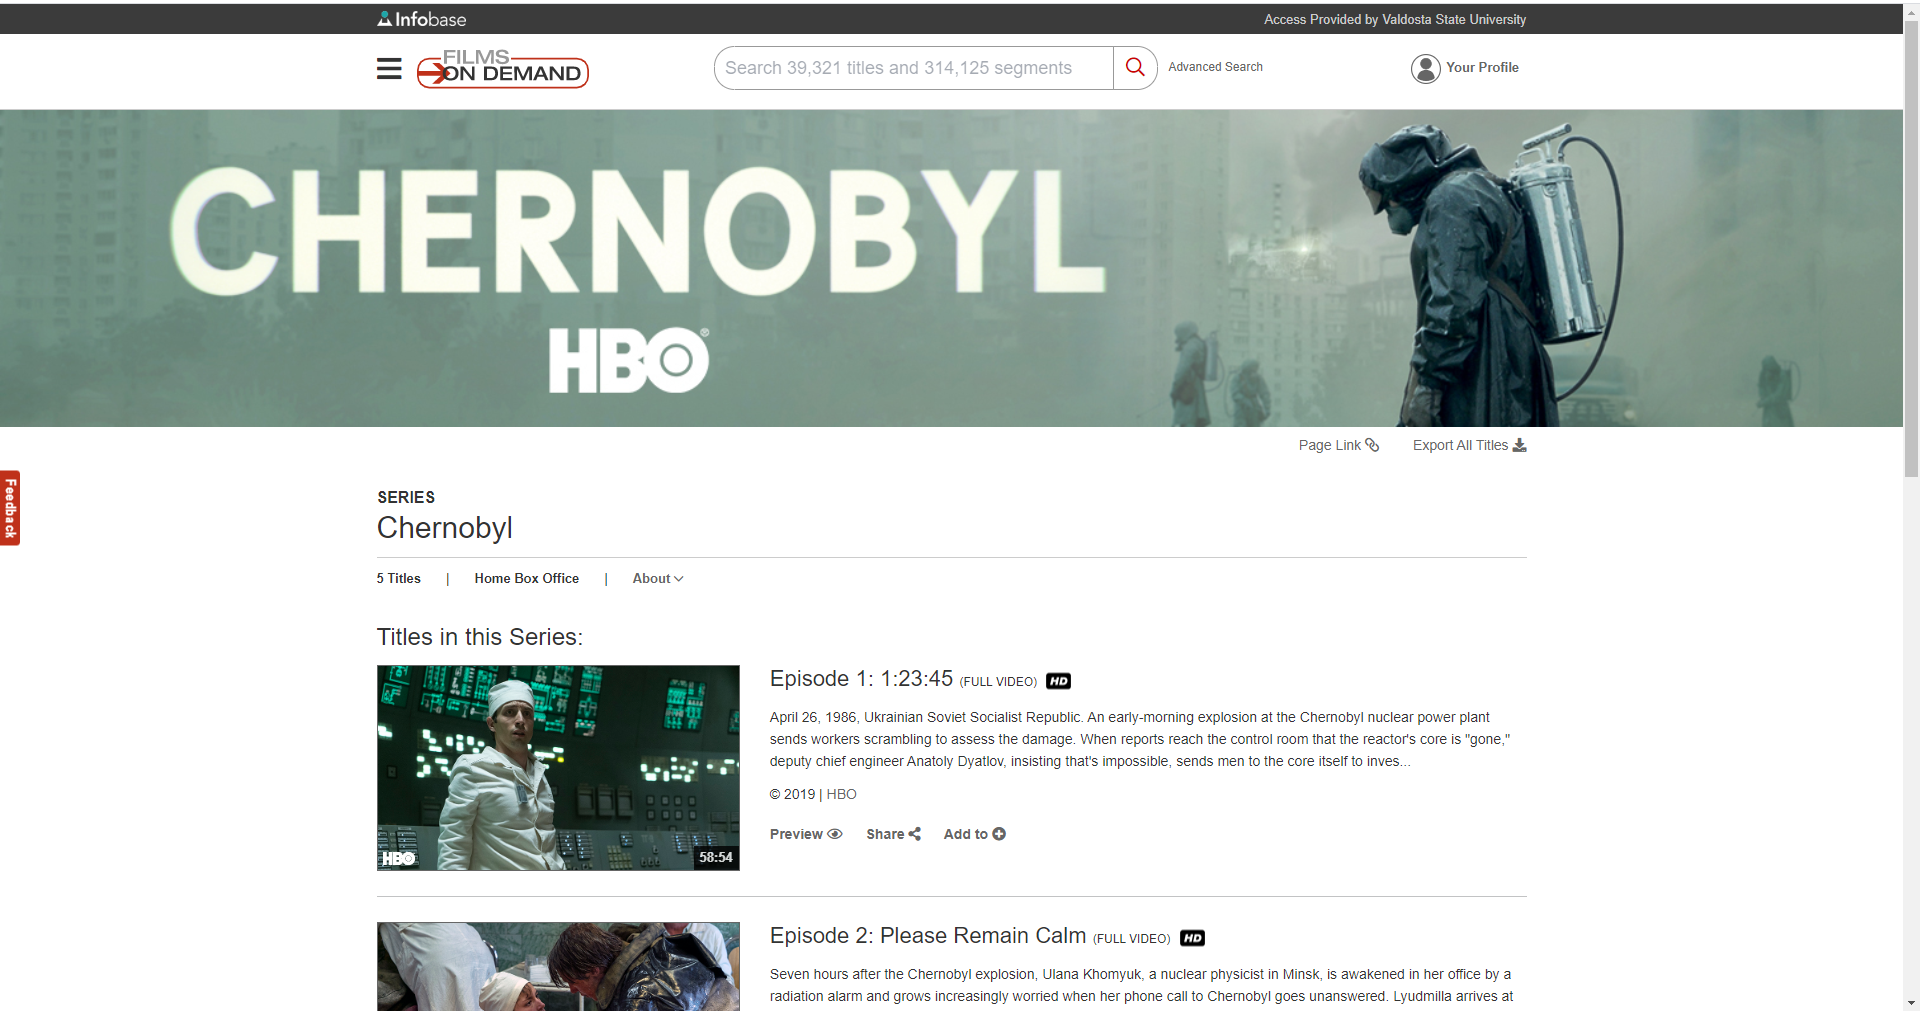 Sample of offerings from Films on Demand like HBO's Chernobyl